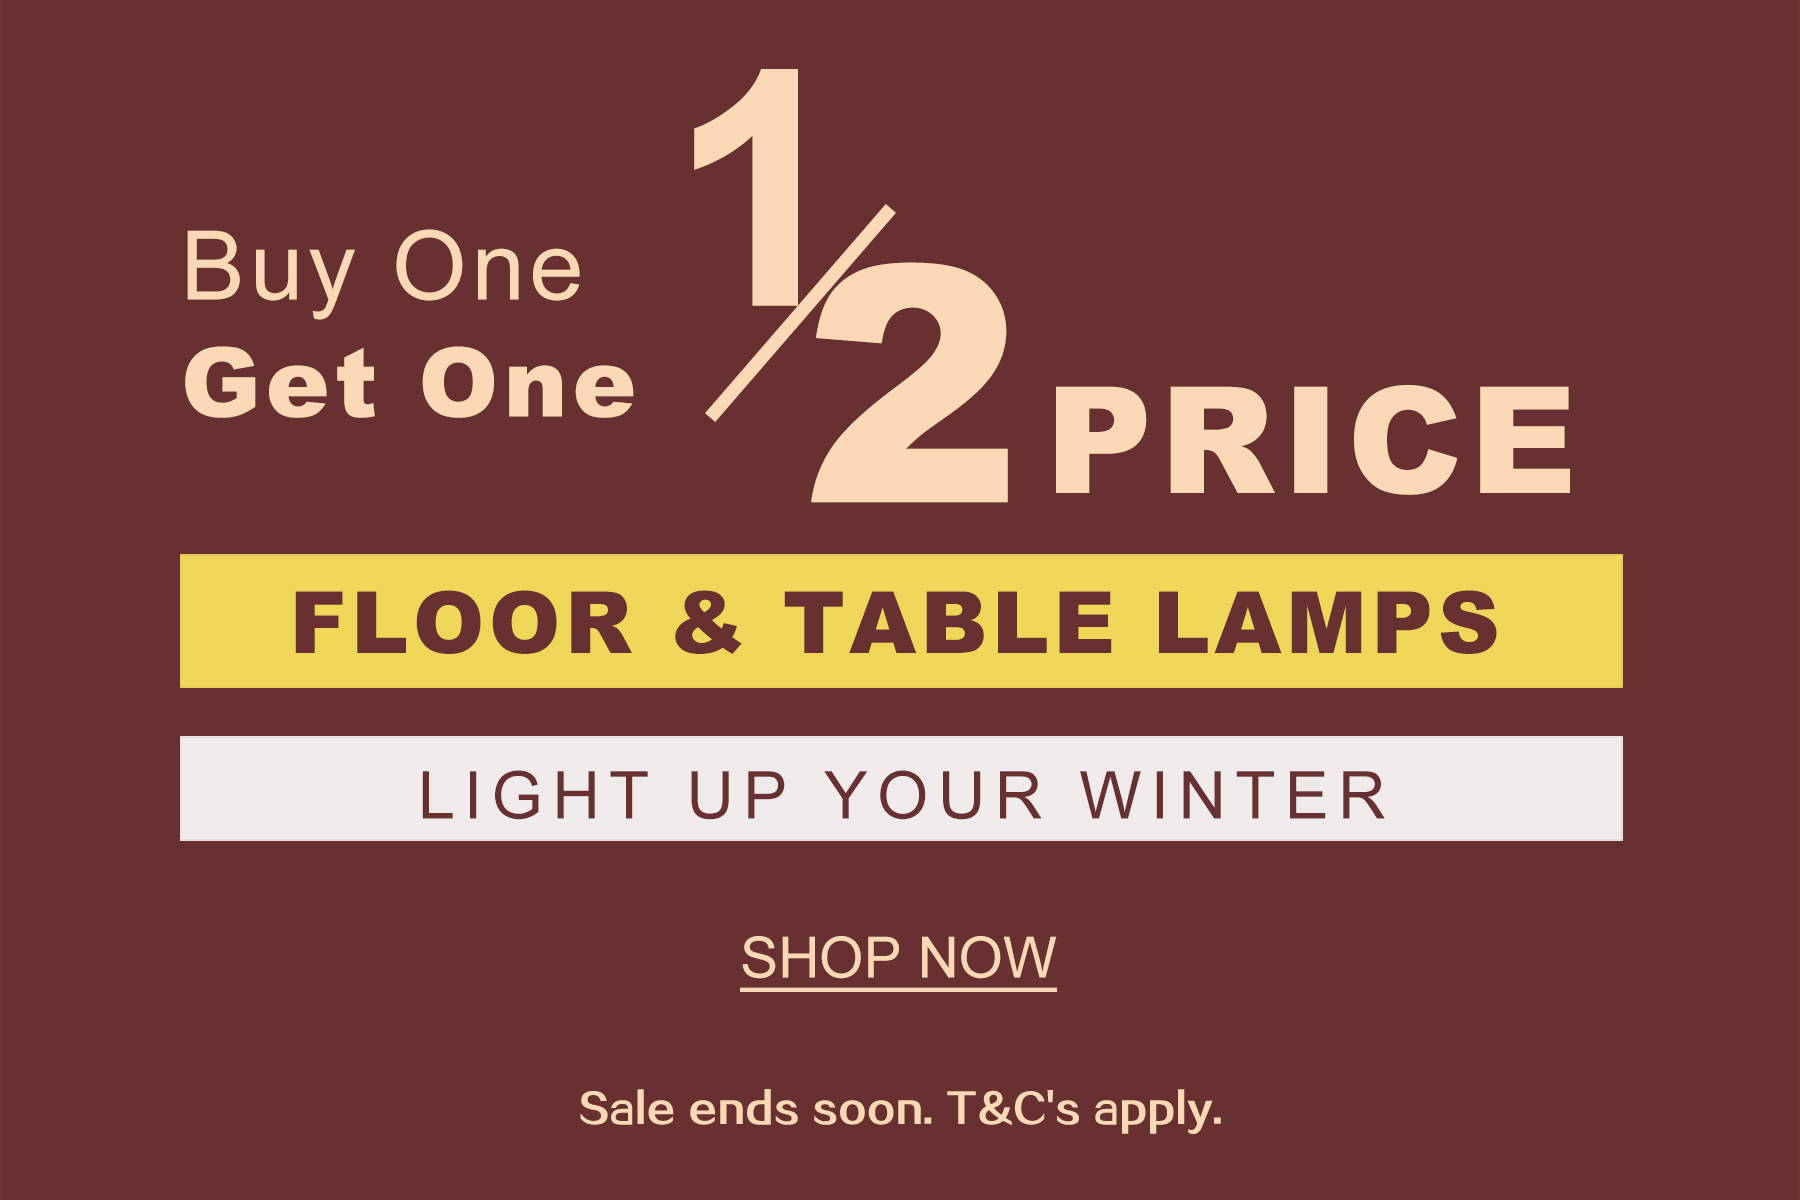 floor and table lamps promo